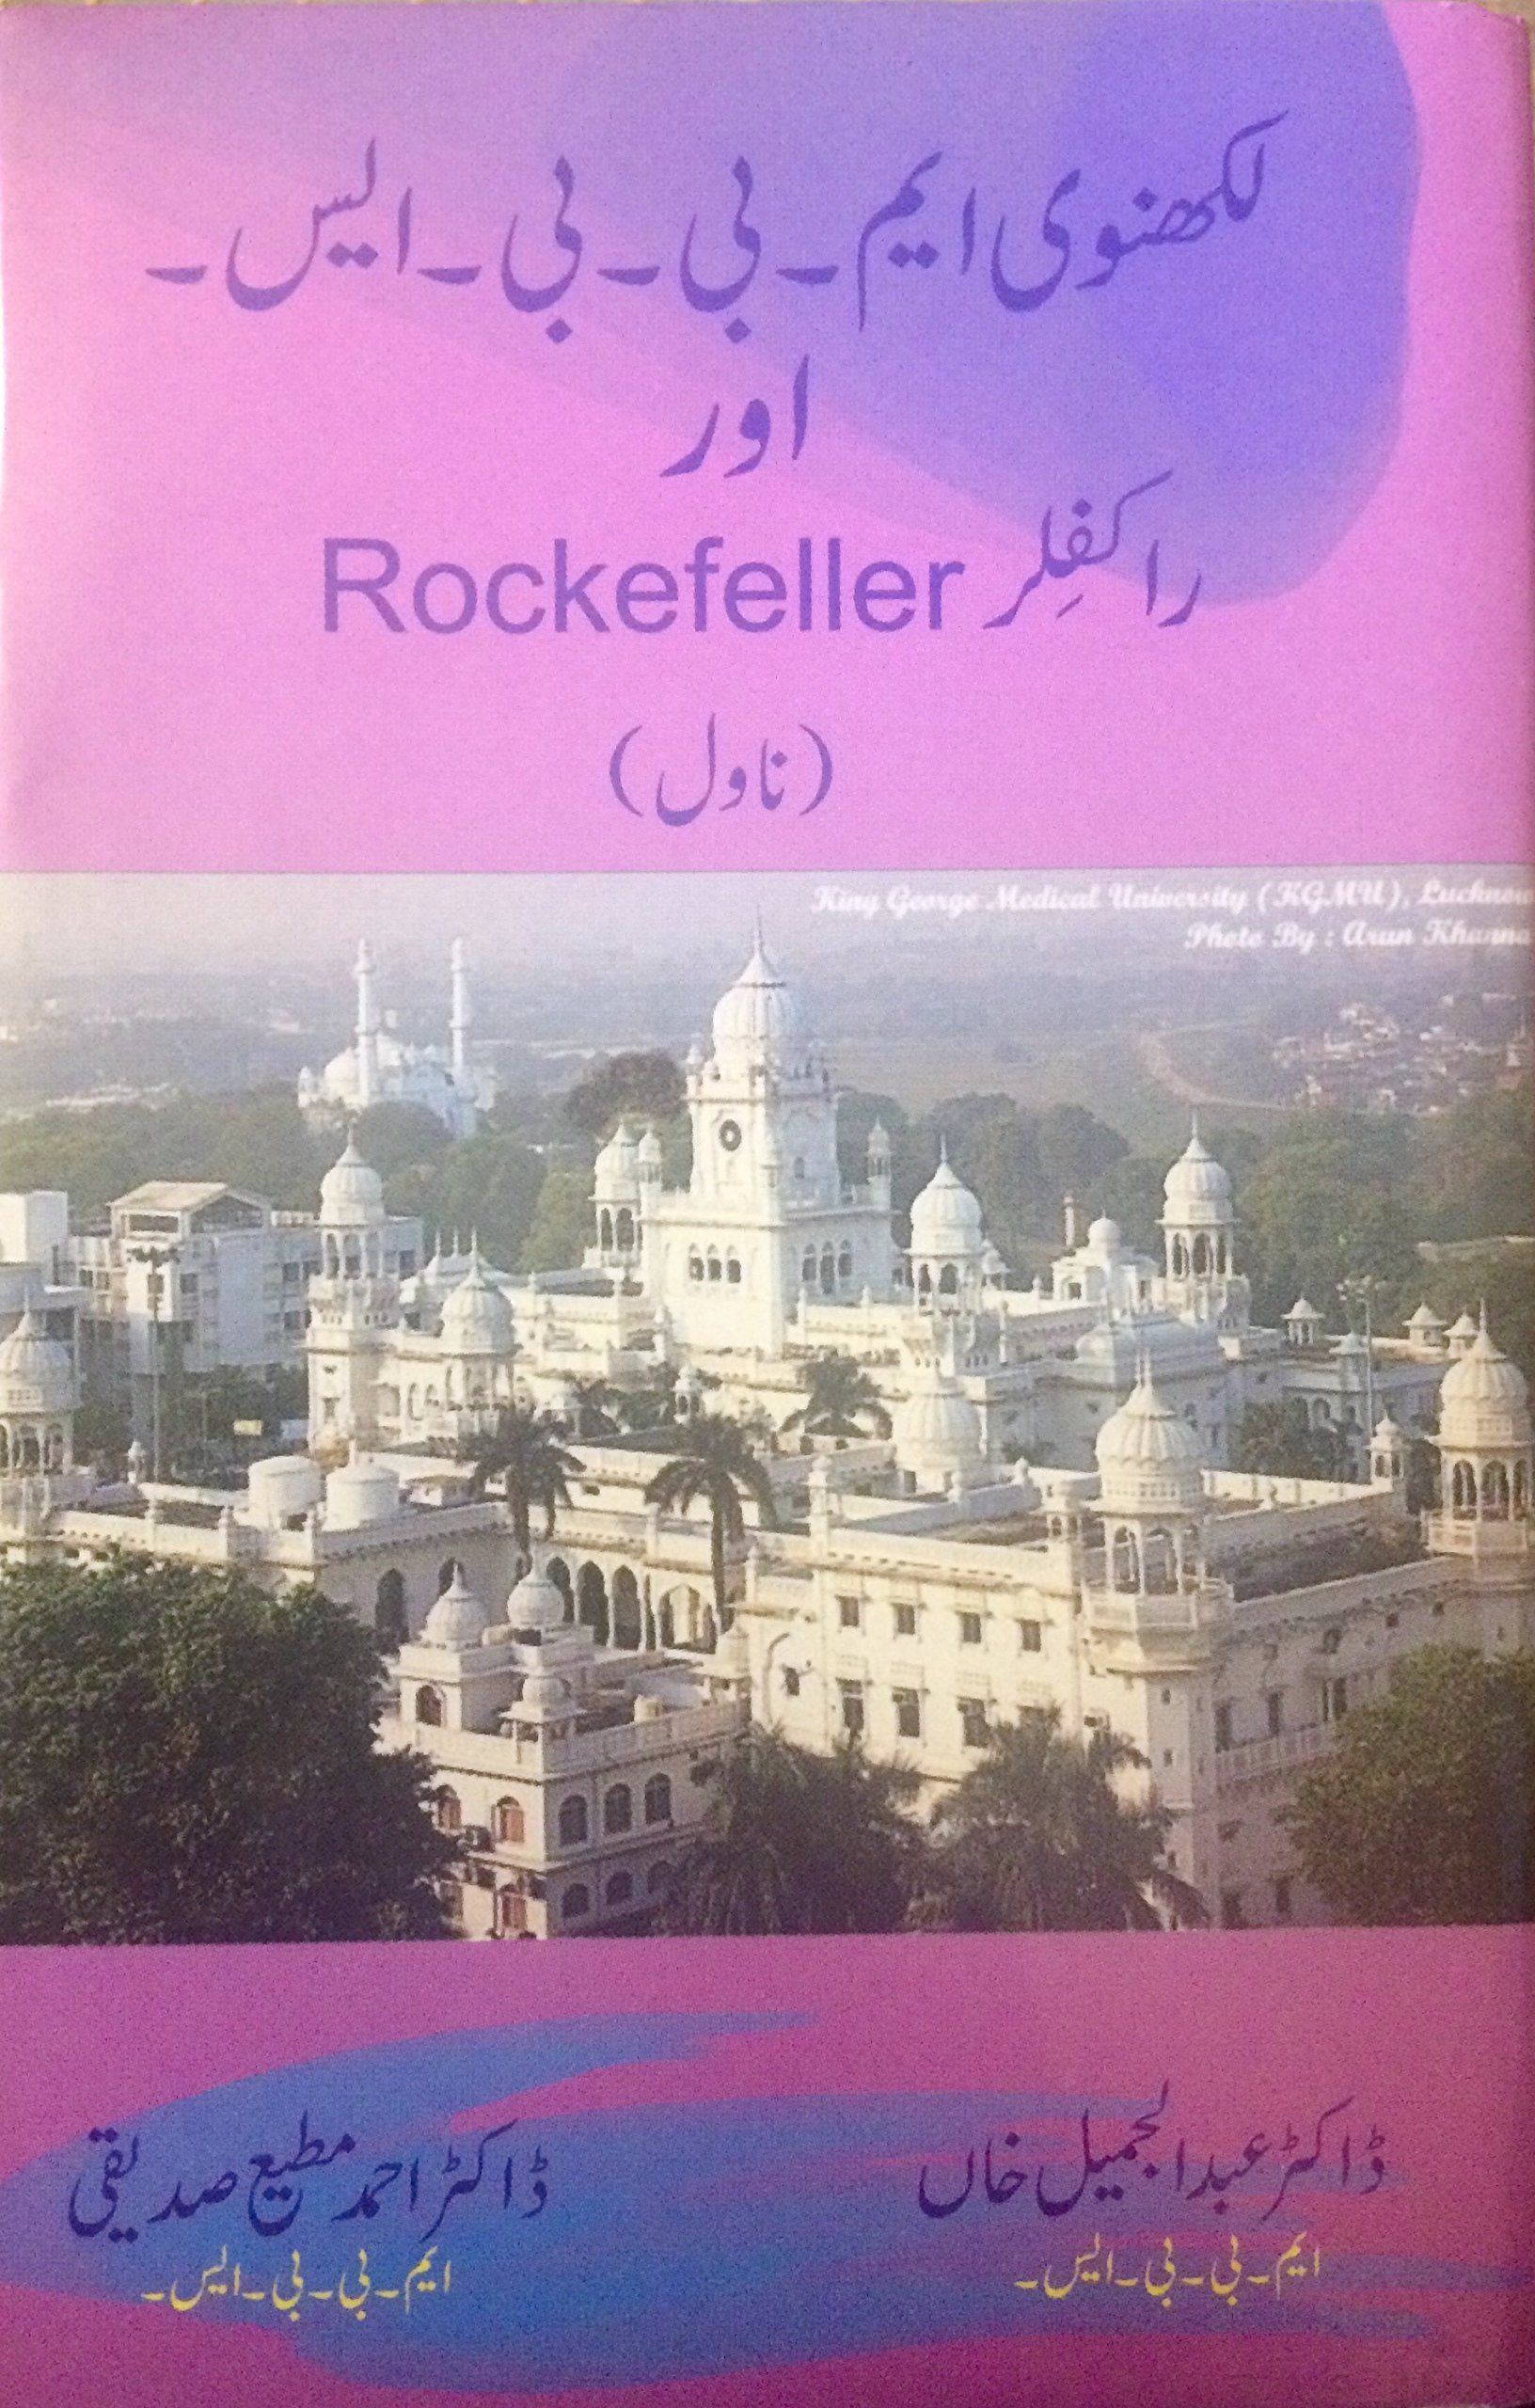 Lucknowi MBBS (Medical Doctor) and Rockefeller: Dr  Abdul